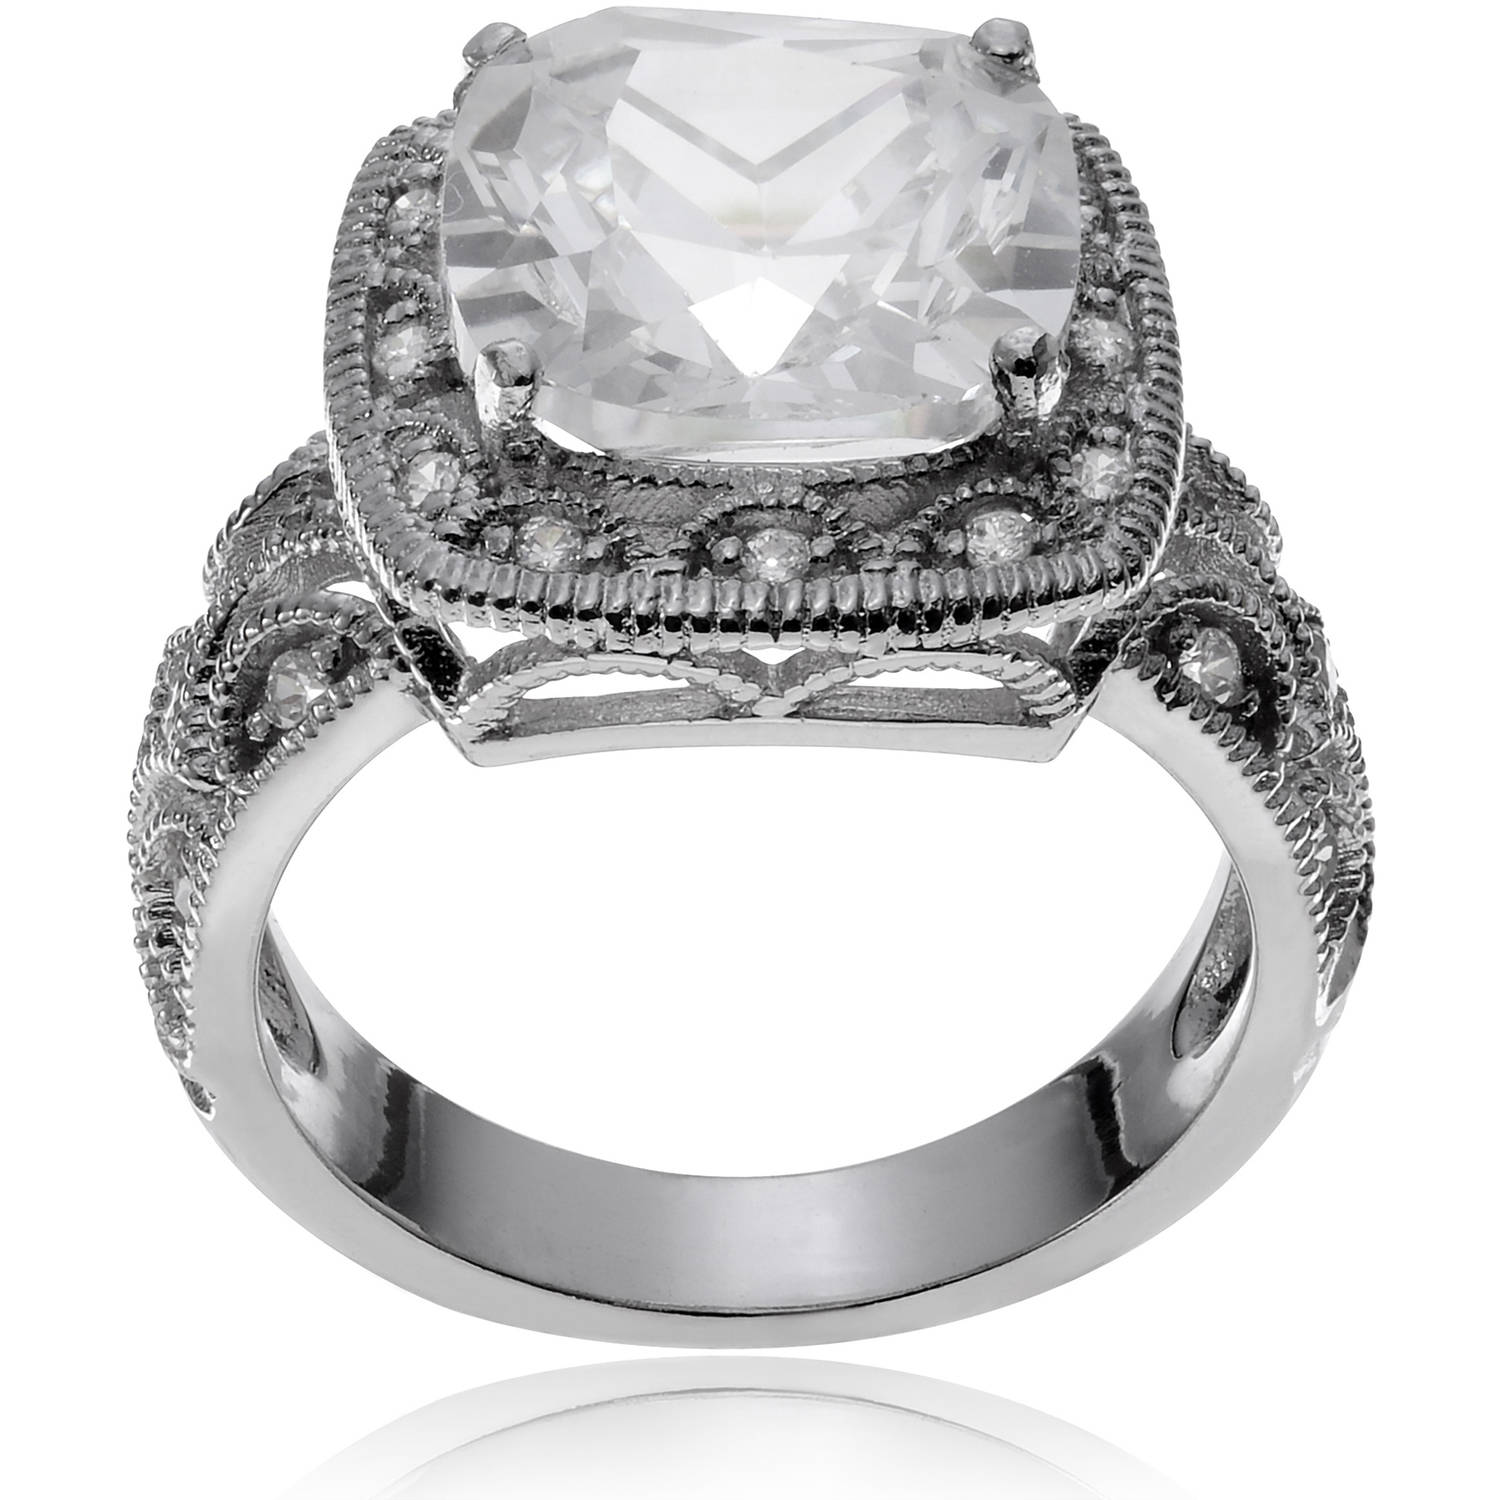 Alexandria Collection Women's Princess Cut Cubic Zirconia Silver-tone Engagement Ring